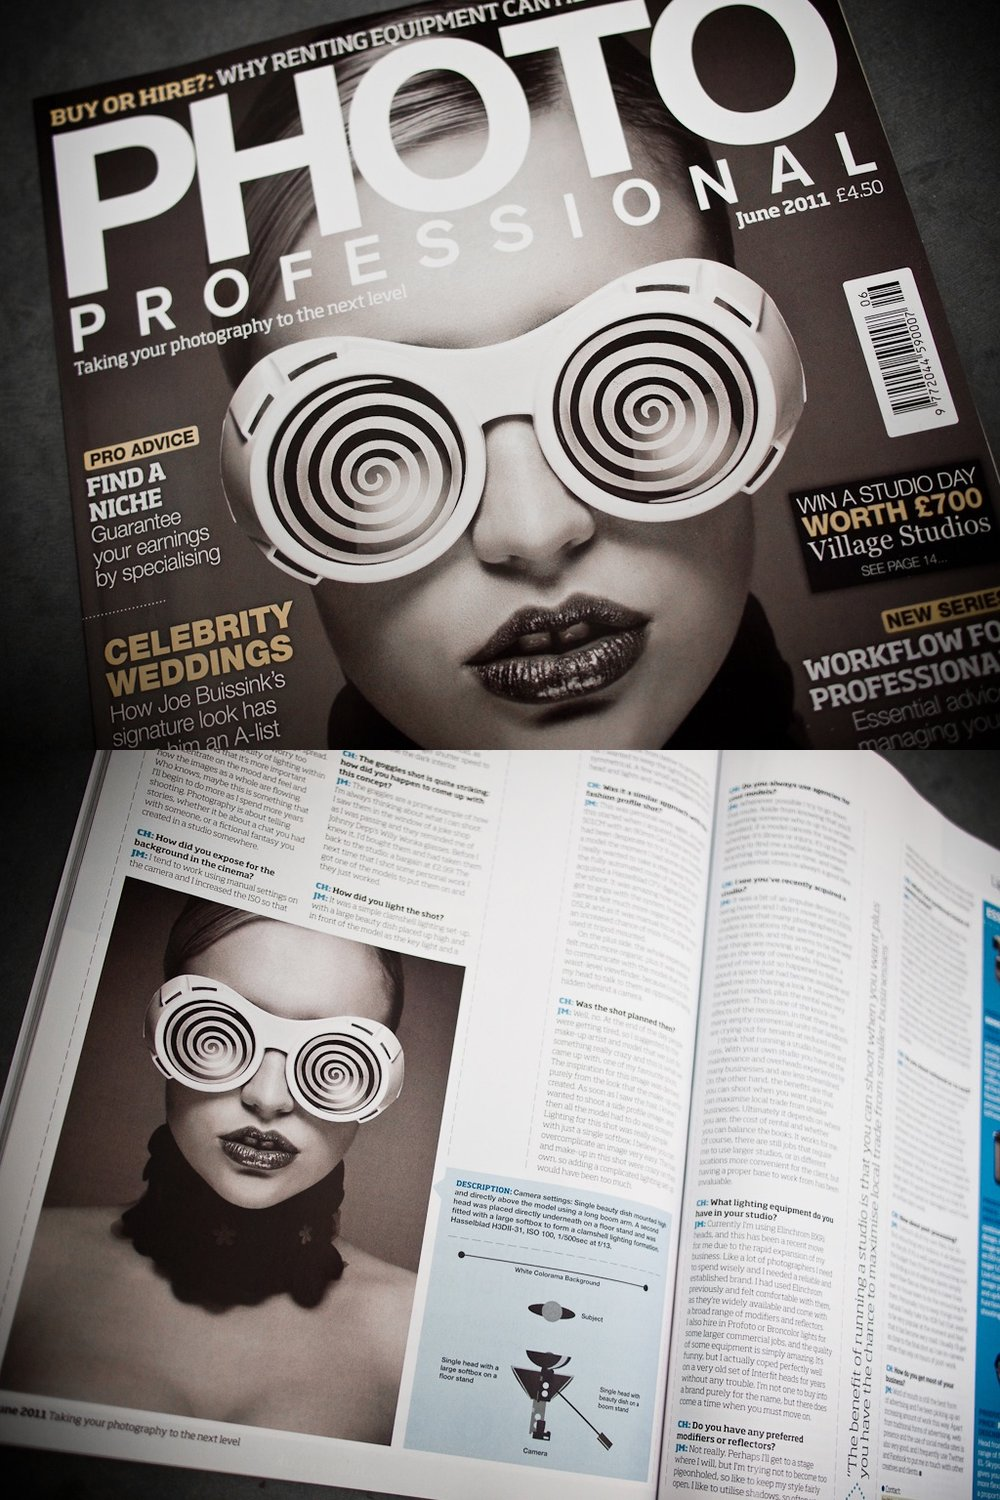 Photo Professional Magazine June 2011 Cover Jay McLaughlin Feature Article Interview